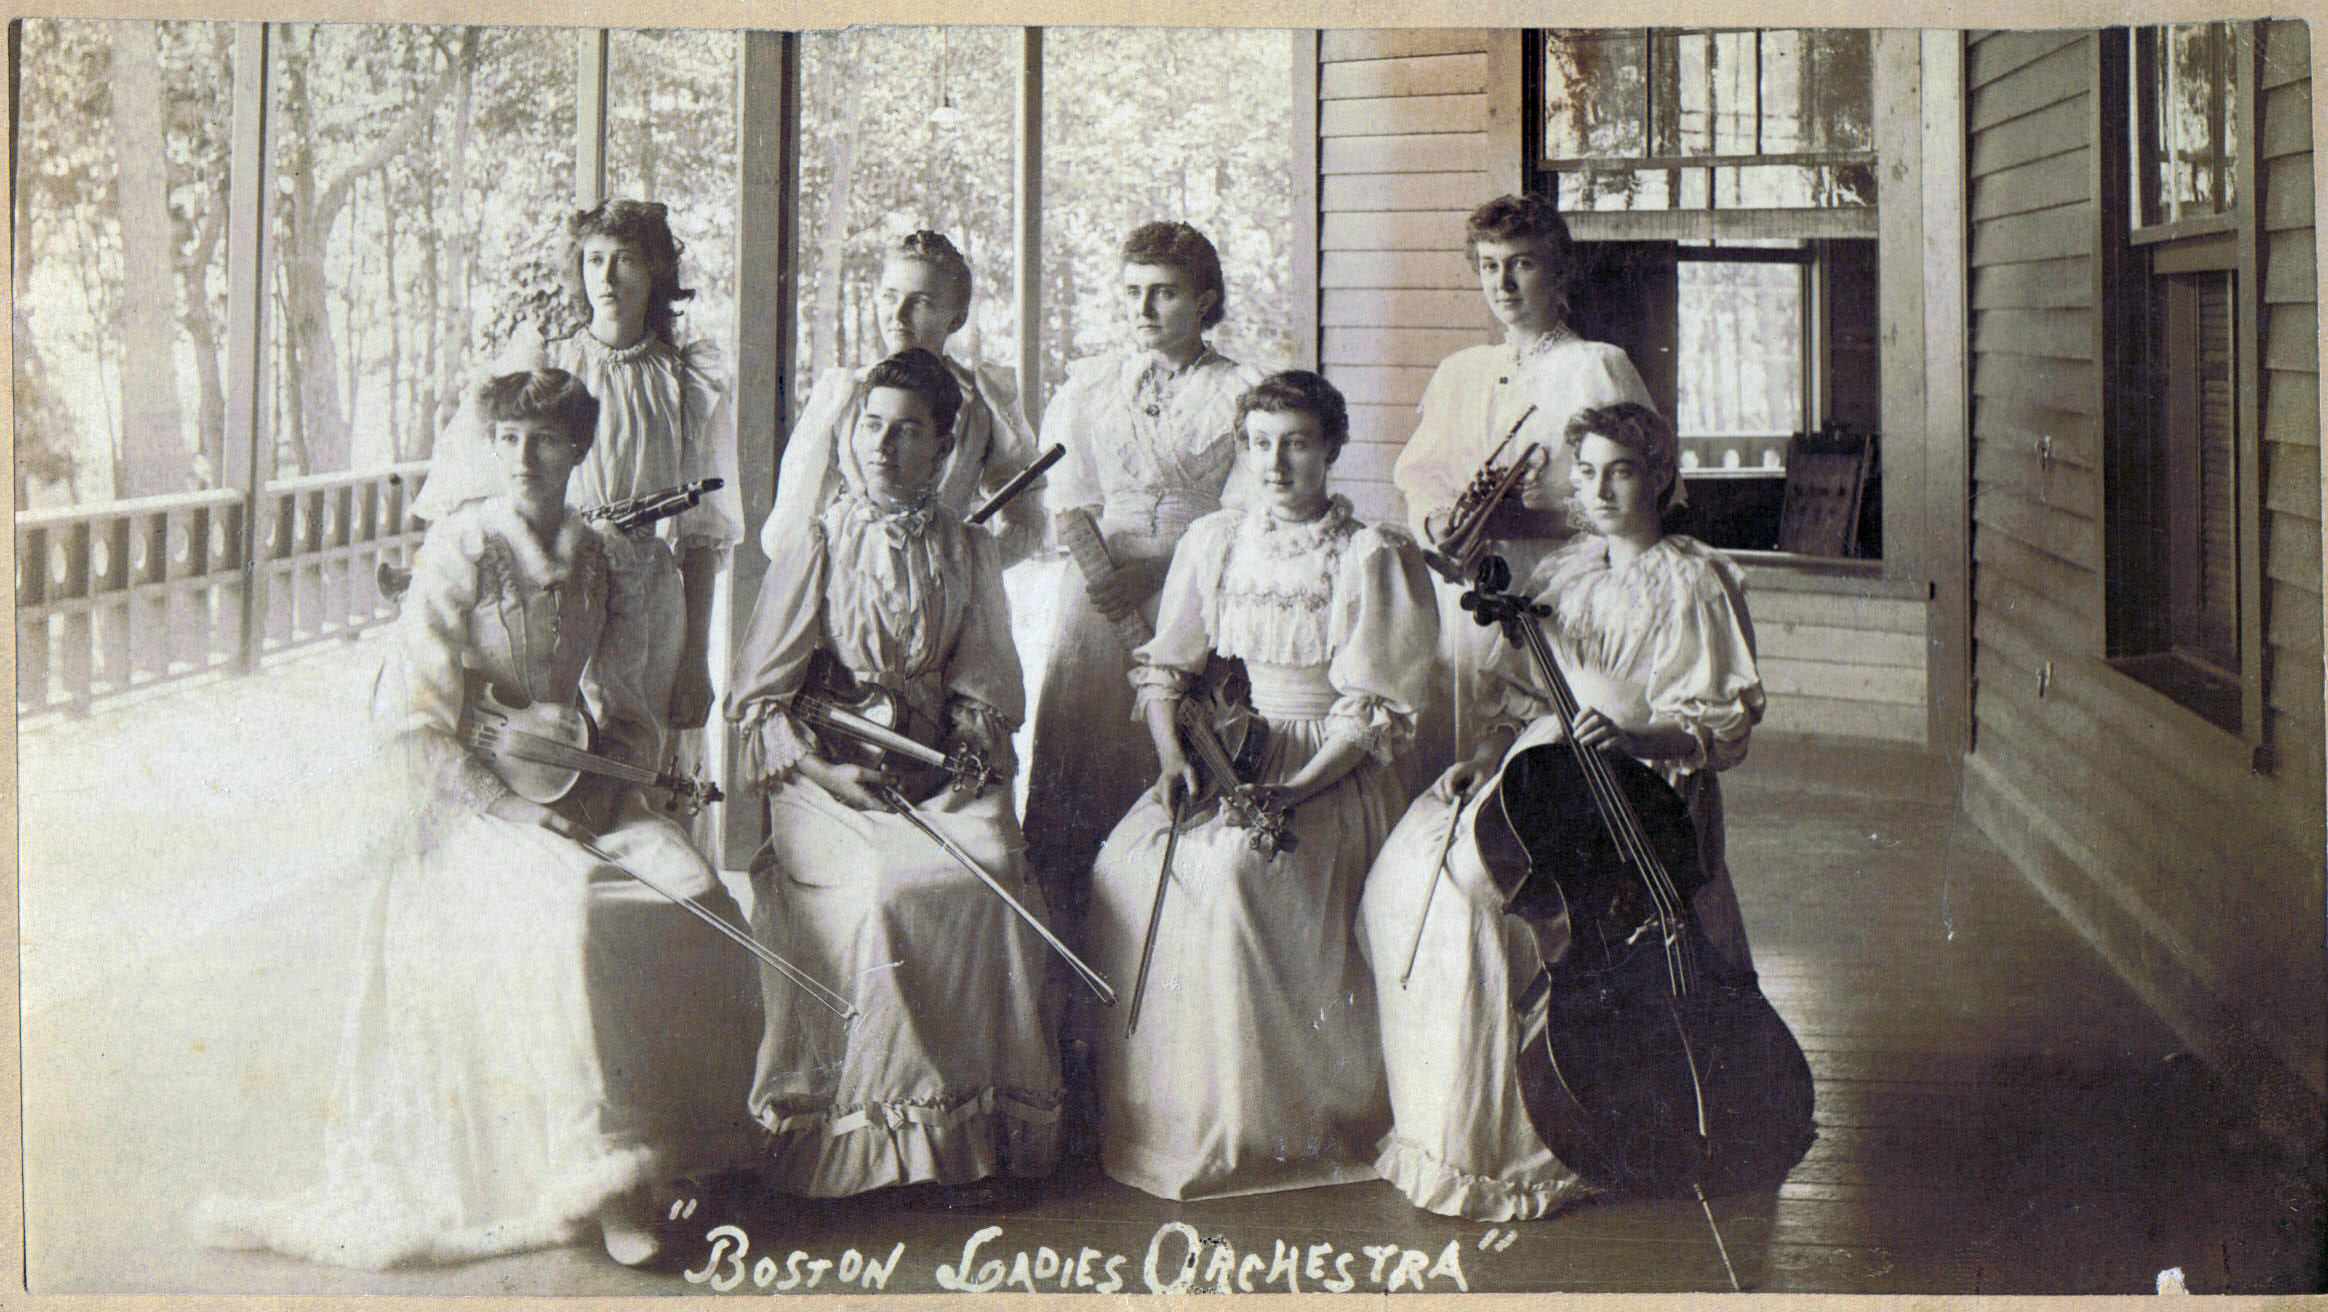 florence chamber orchestra of boston - photo#8